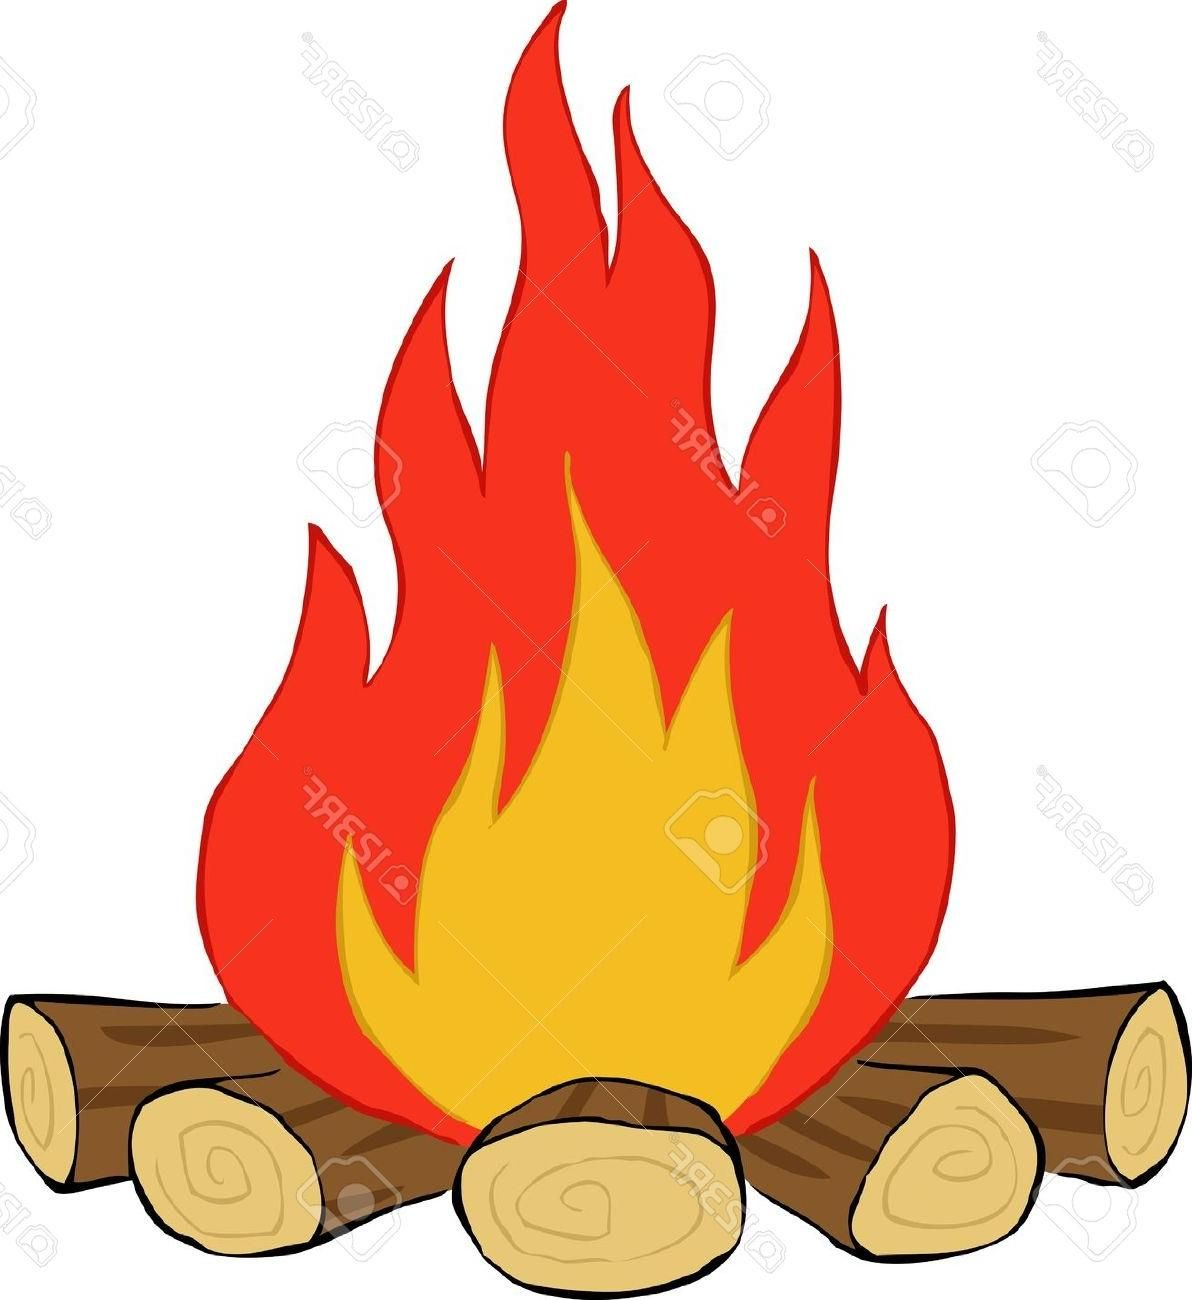 Best free camp fire. Fireplace clipart log in